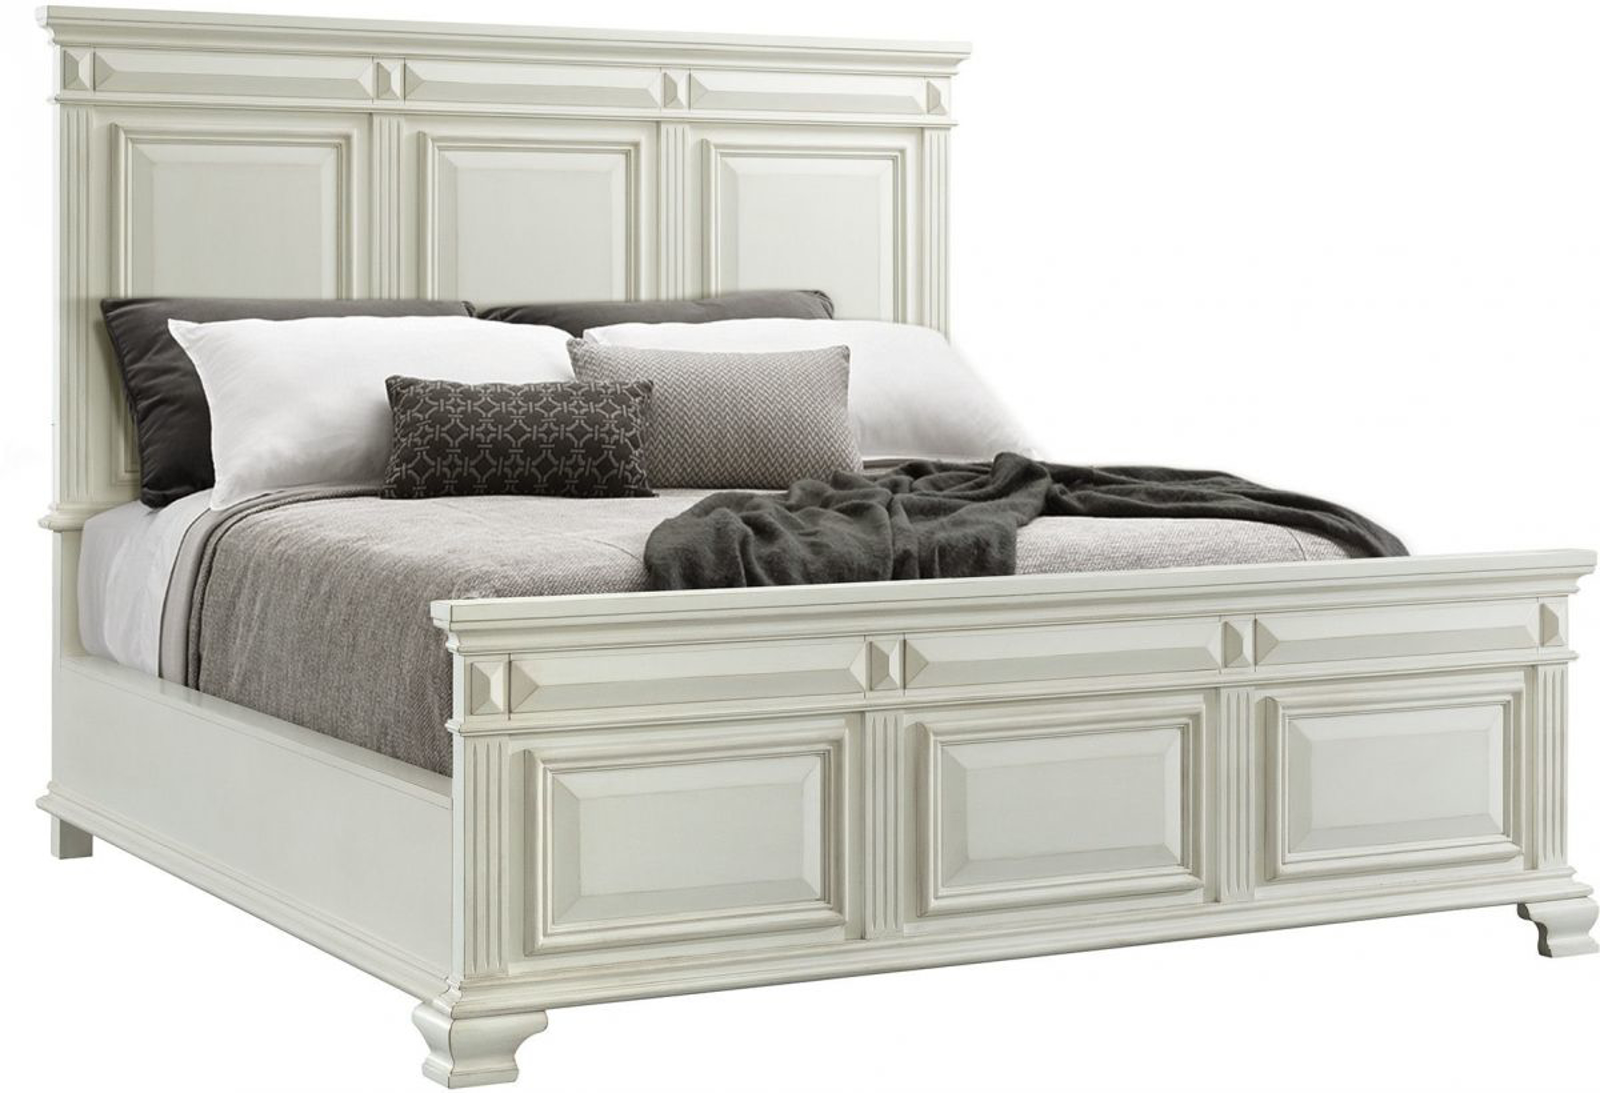 Picture of Calloway King Size Bed